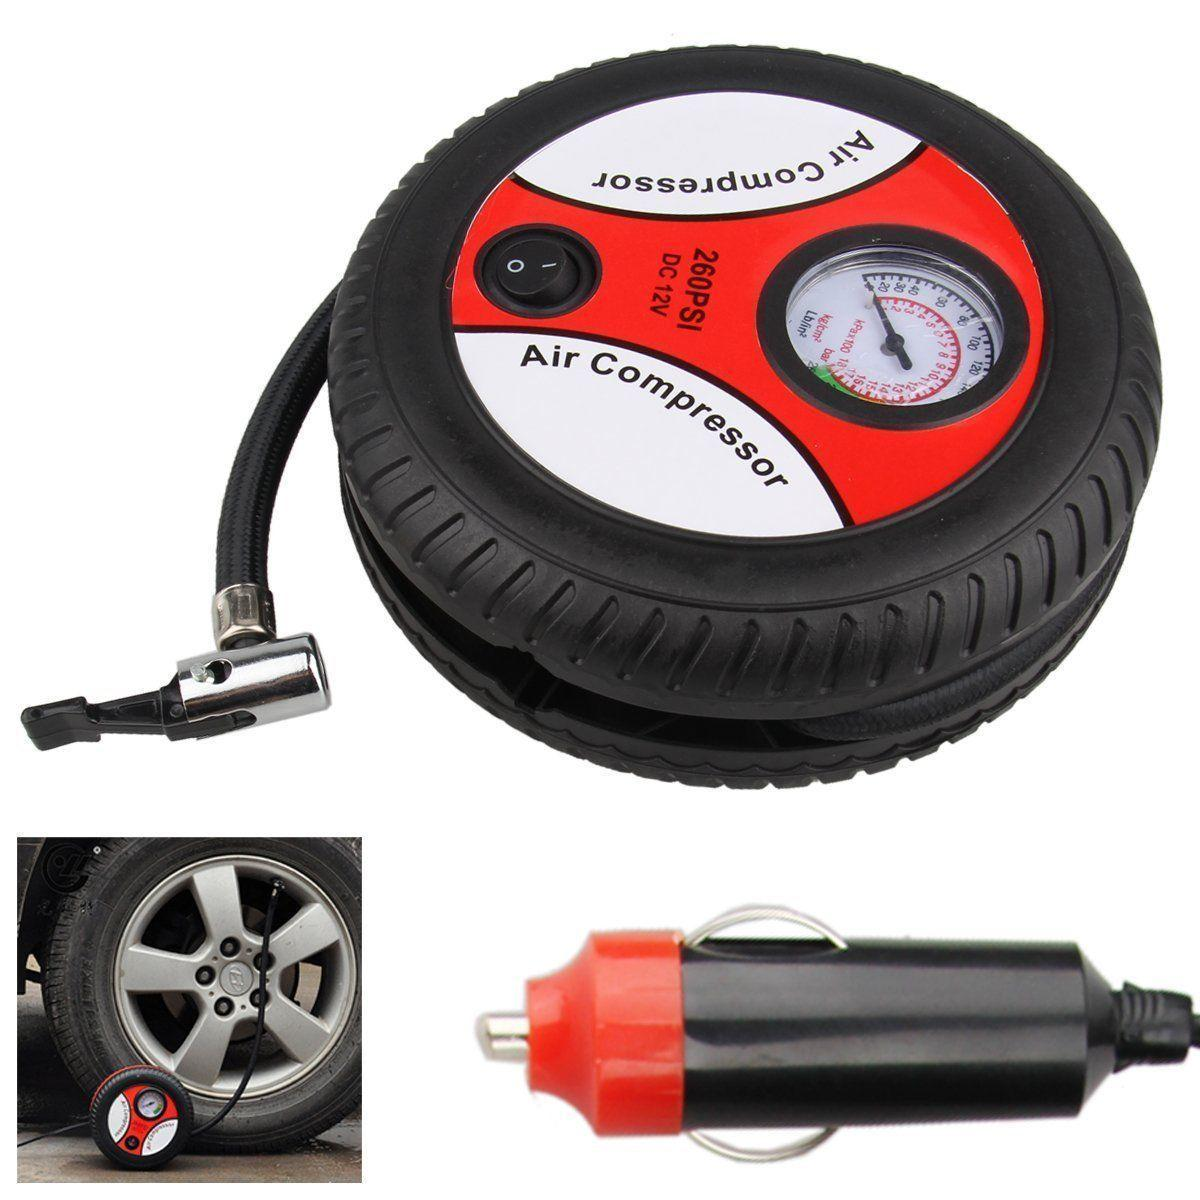 2020 Mini Portable Electric Air Compressor Pump Car Tire Inflator Pump Tool 12V 260PSI FP9 Free Shpping